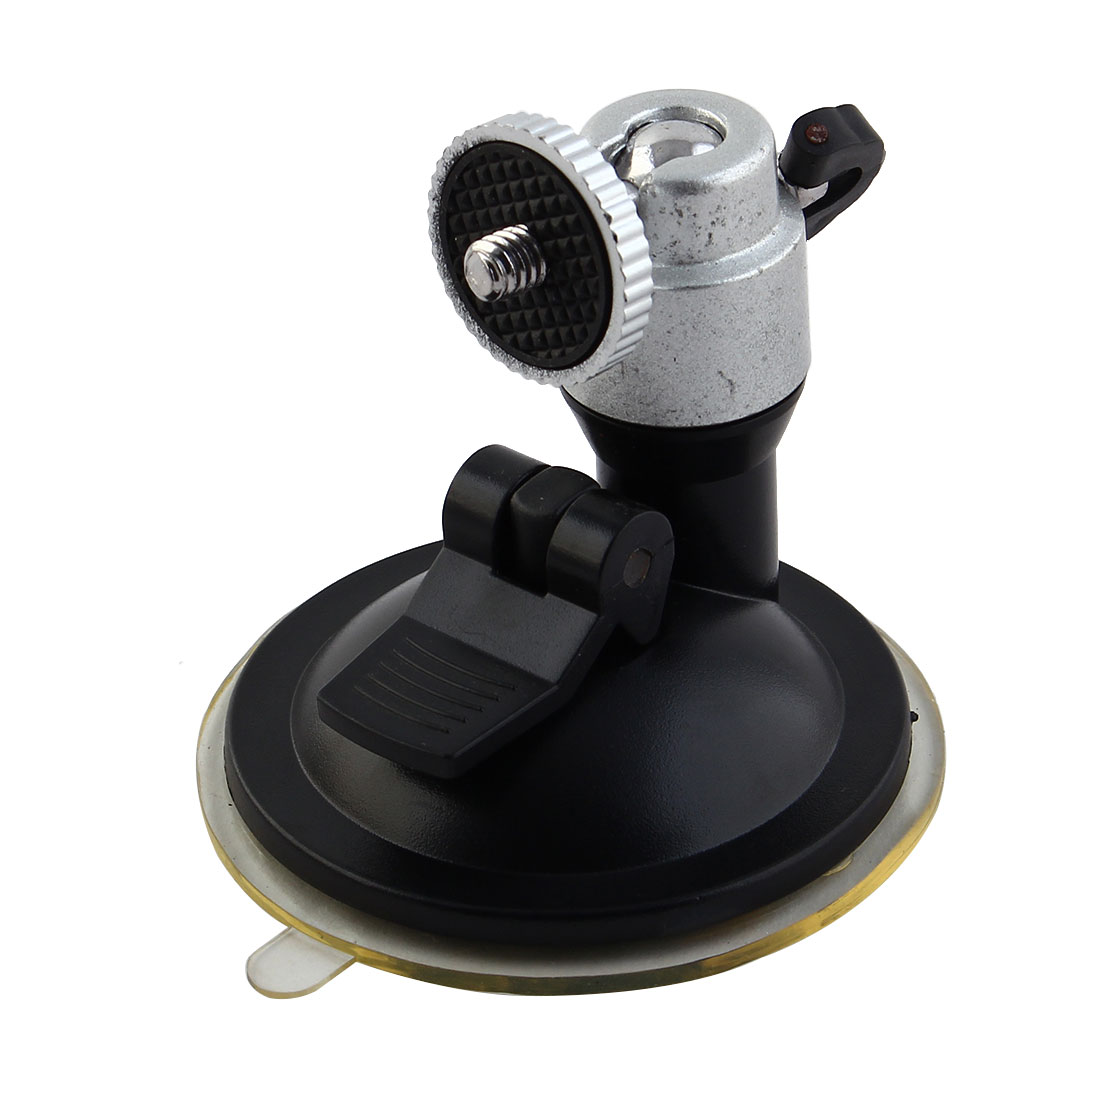 CCTV Camera Holder Round Base Suction Mounting Bracket Stand